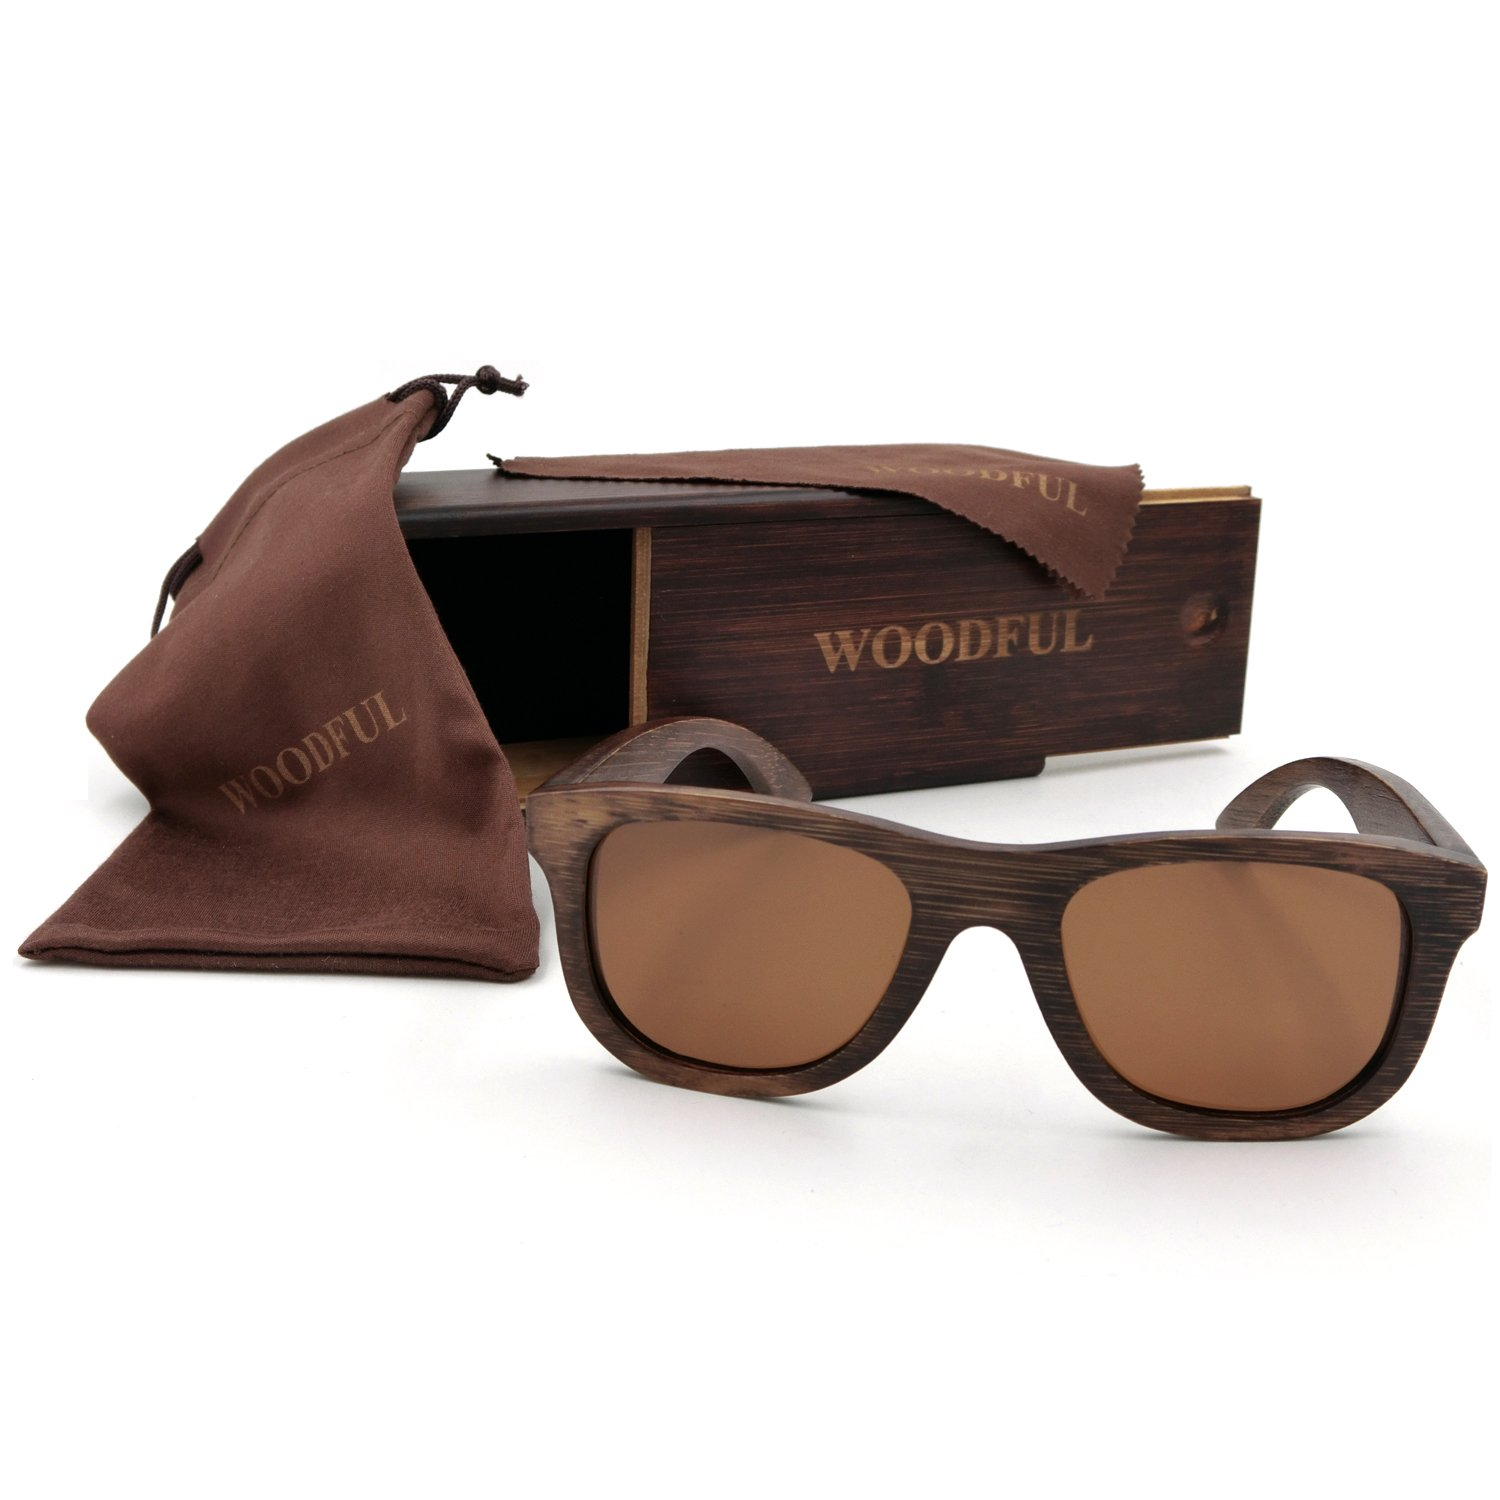 100% Wooden Glasses Wood Eyeglass with Polarized Lens Sunglasses